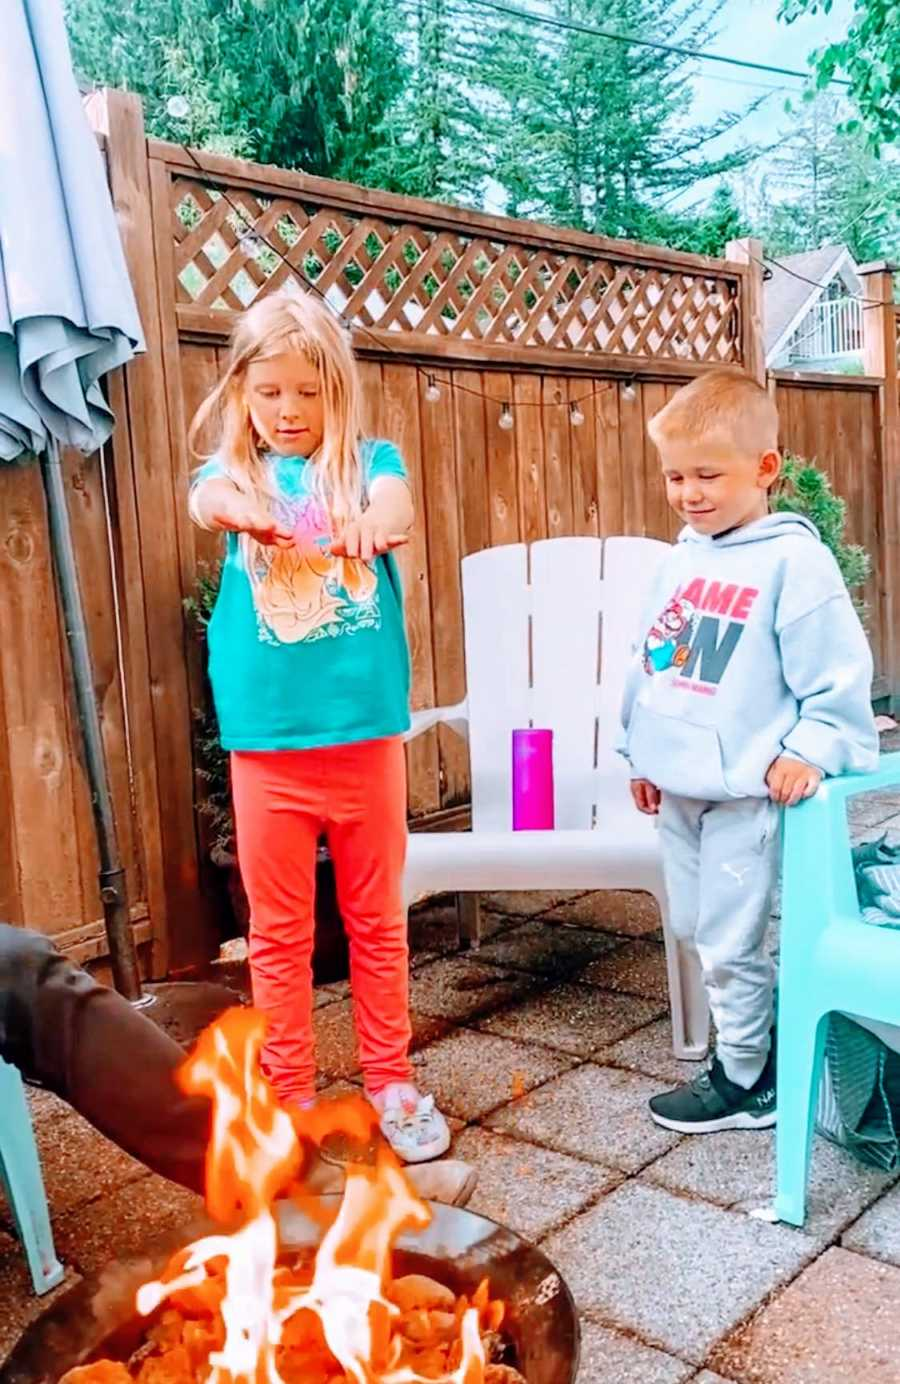 Two young kids stand outside and warm up by a fire in their backyard